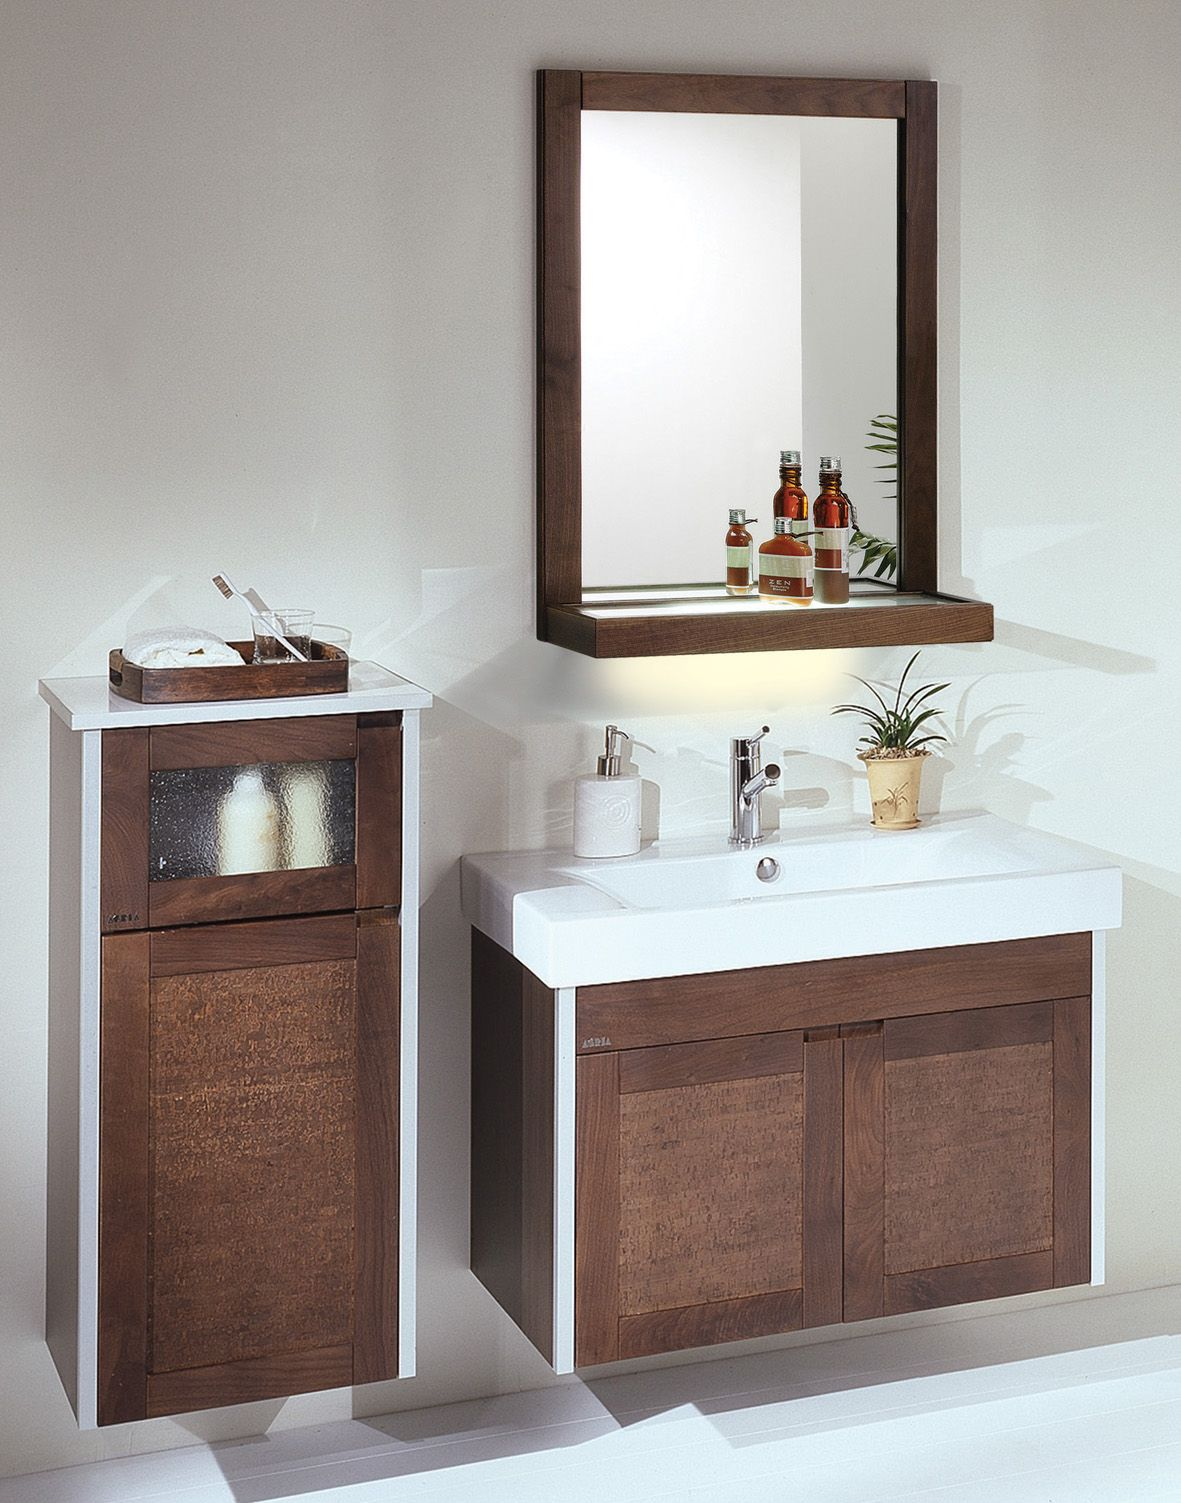 small sink vanity for small bathrooms%0A bathroom sink cabinets white